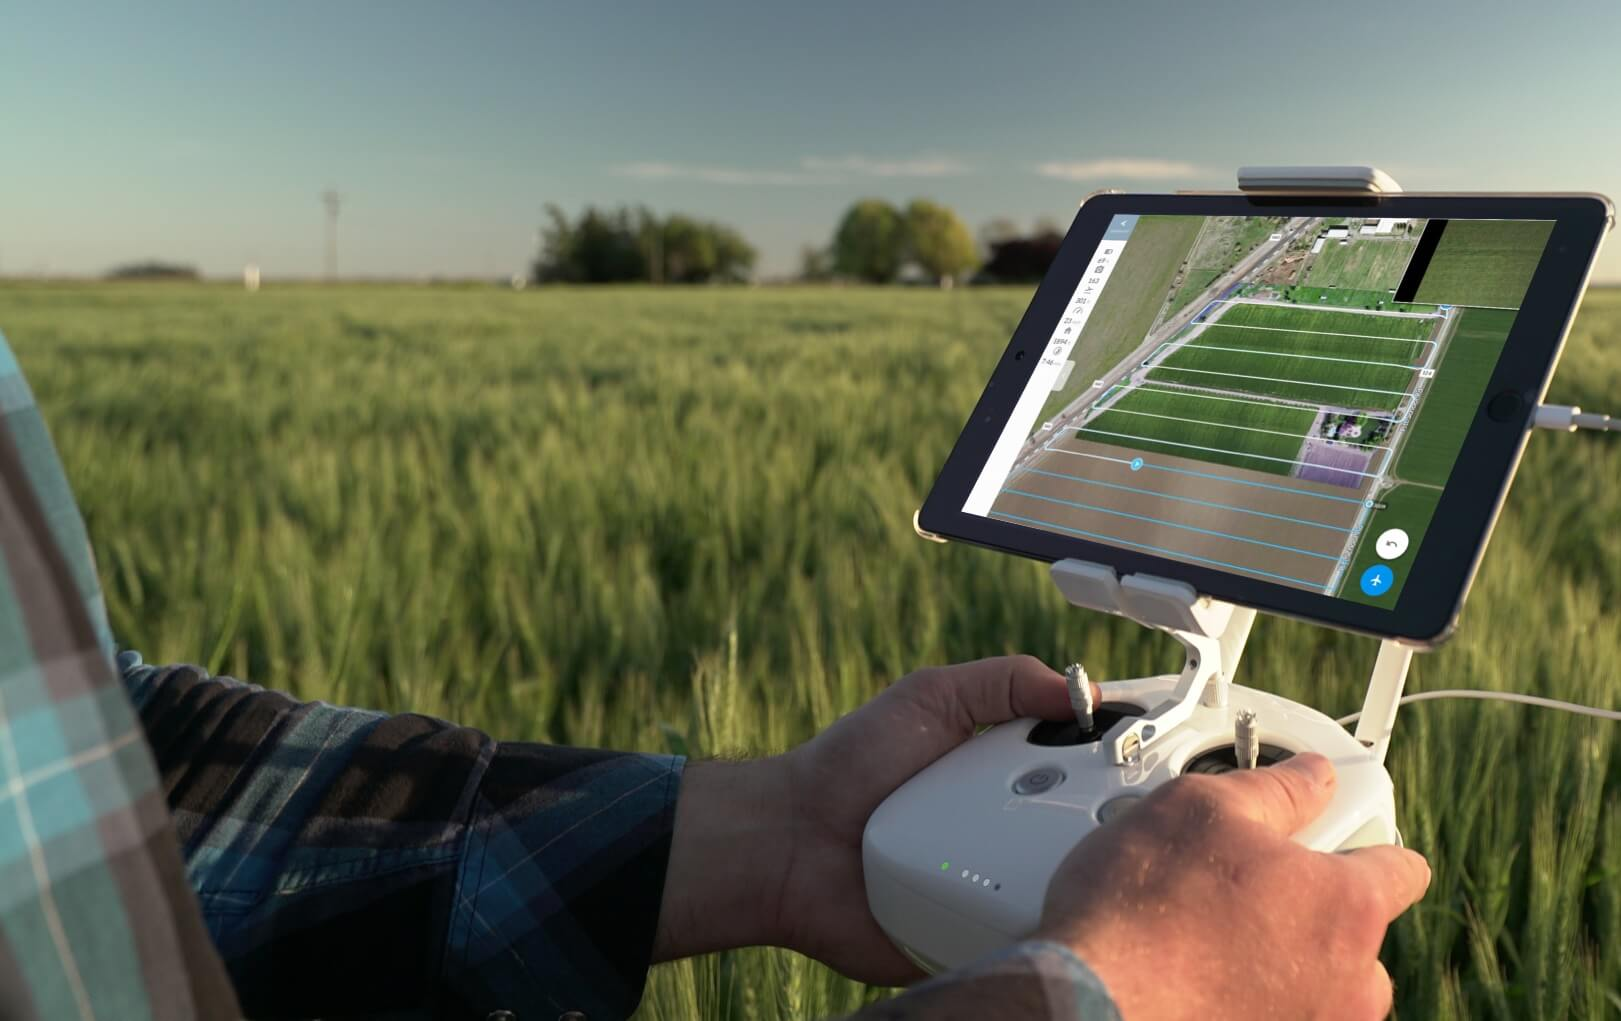 What are outputs of aerial surveying using drone?